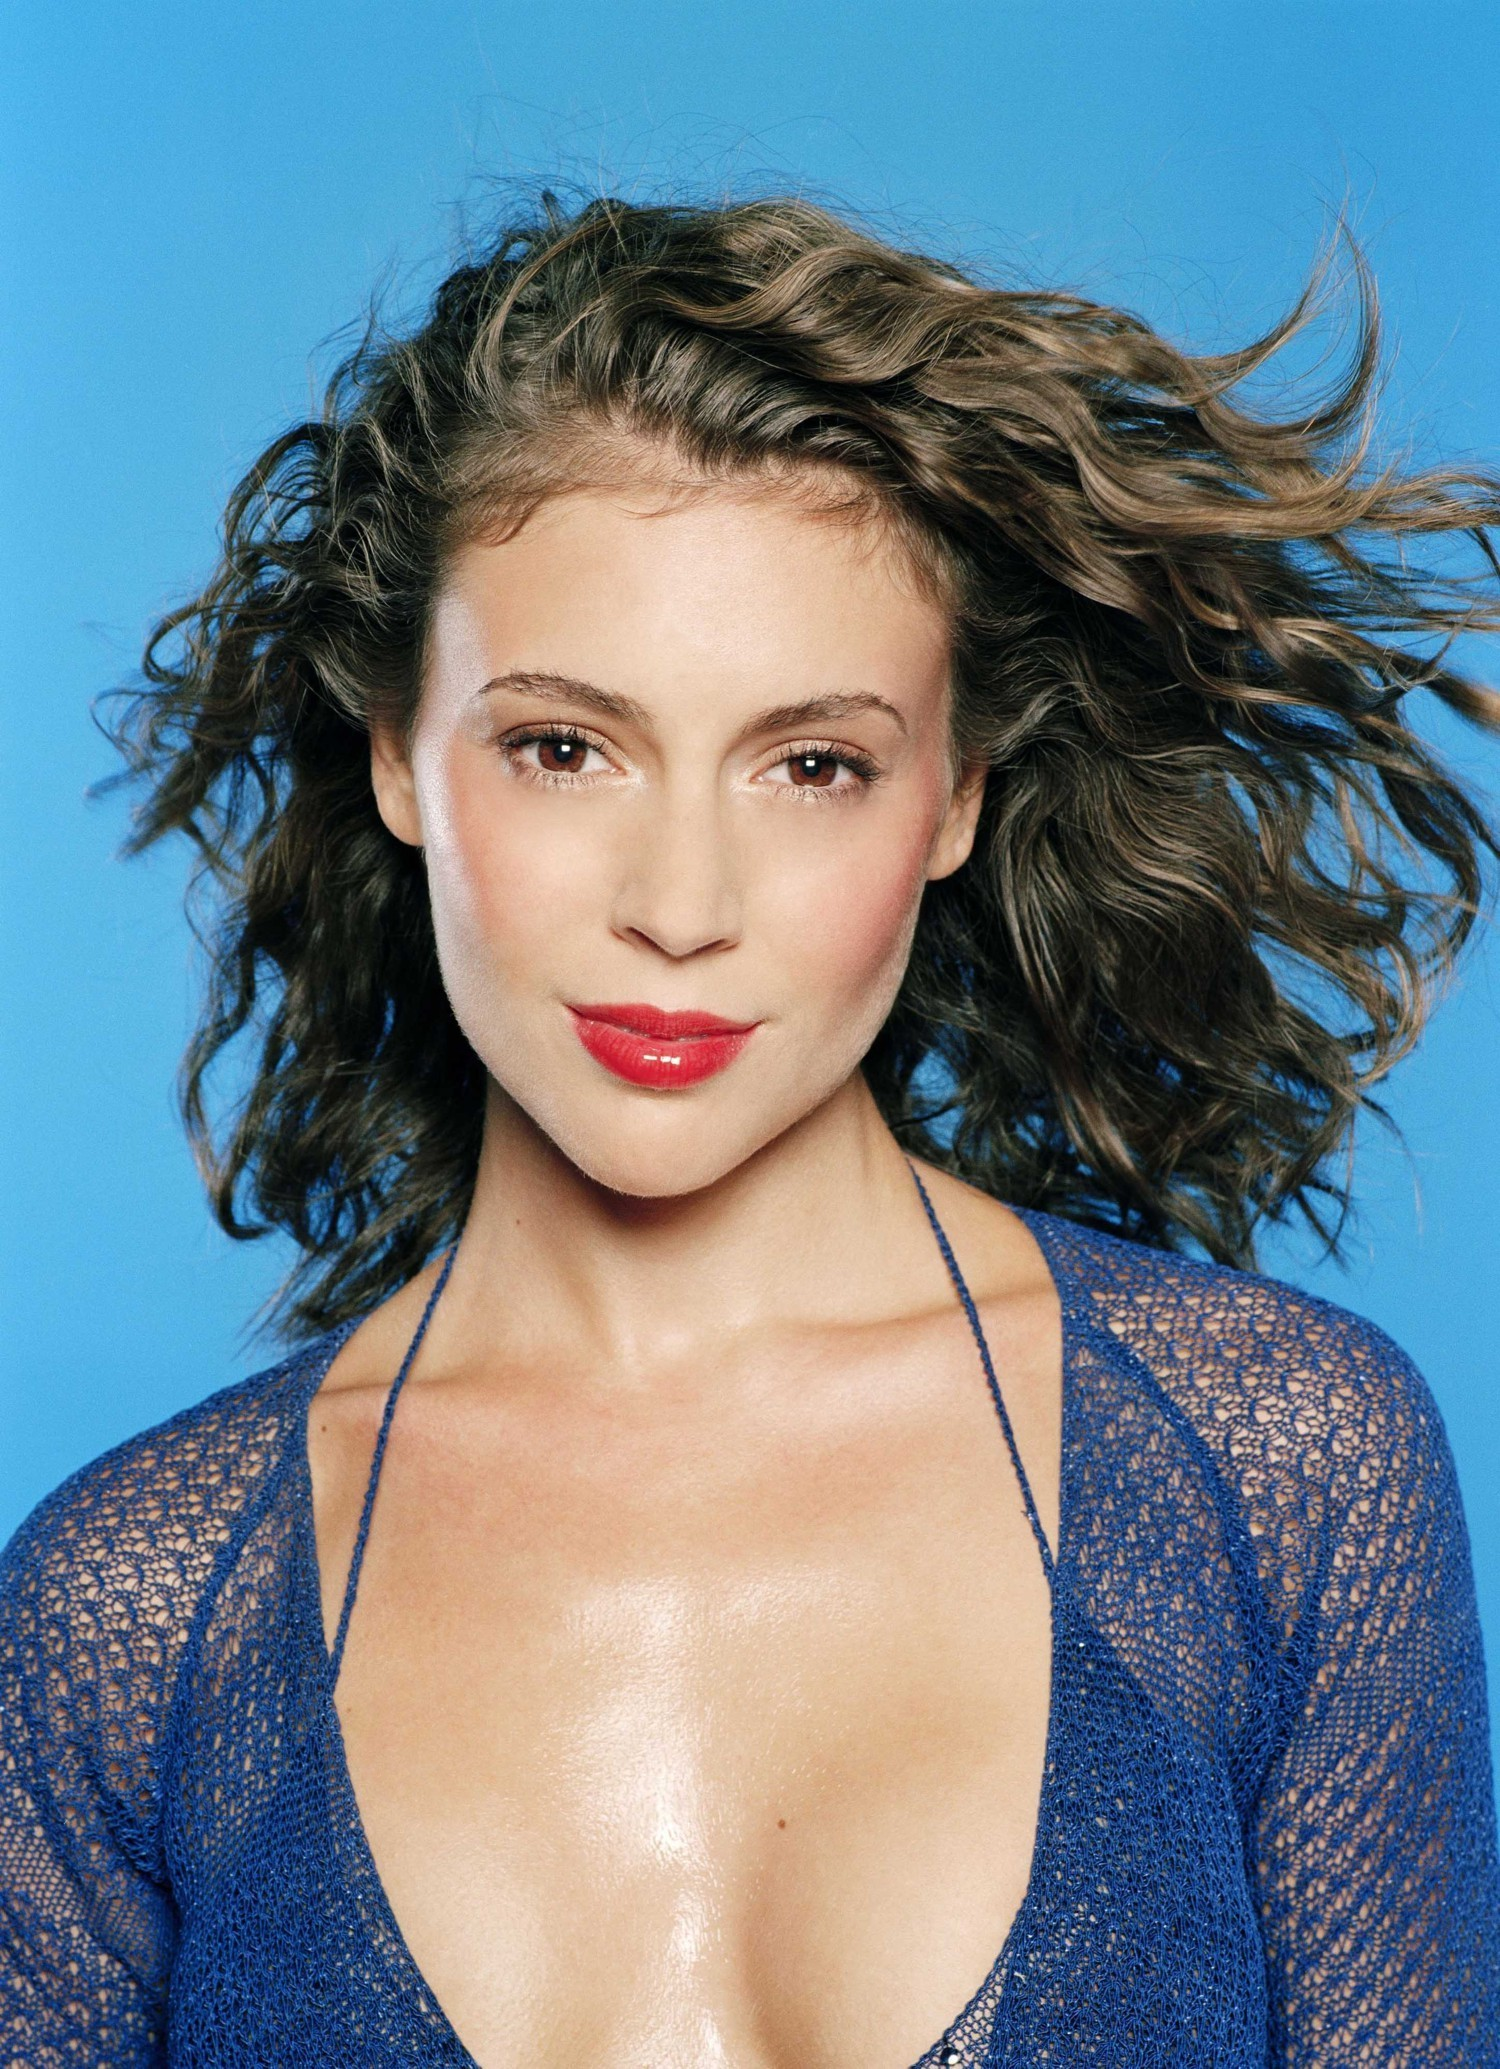 Alyssa Milano Images Alyssa Milano Hd Wallpaper And